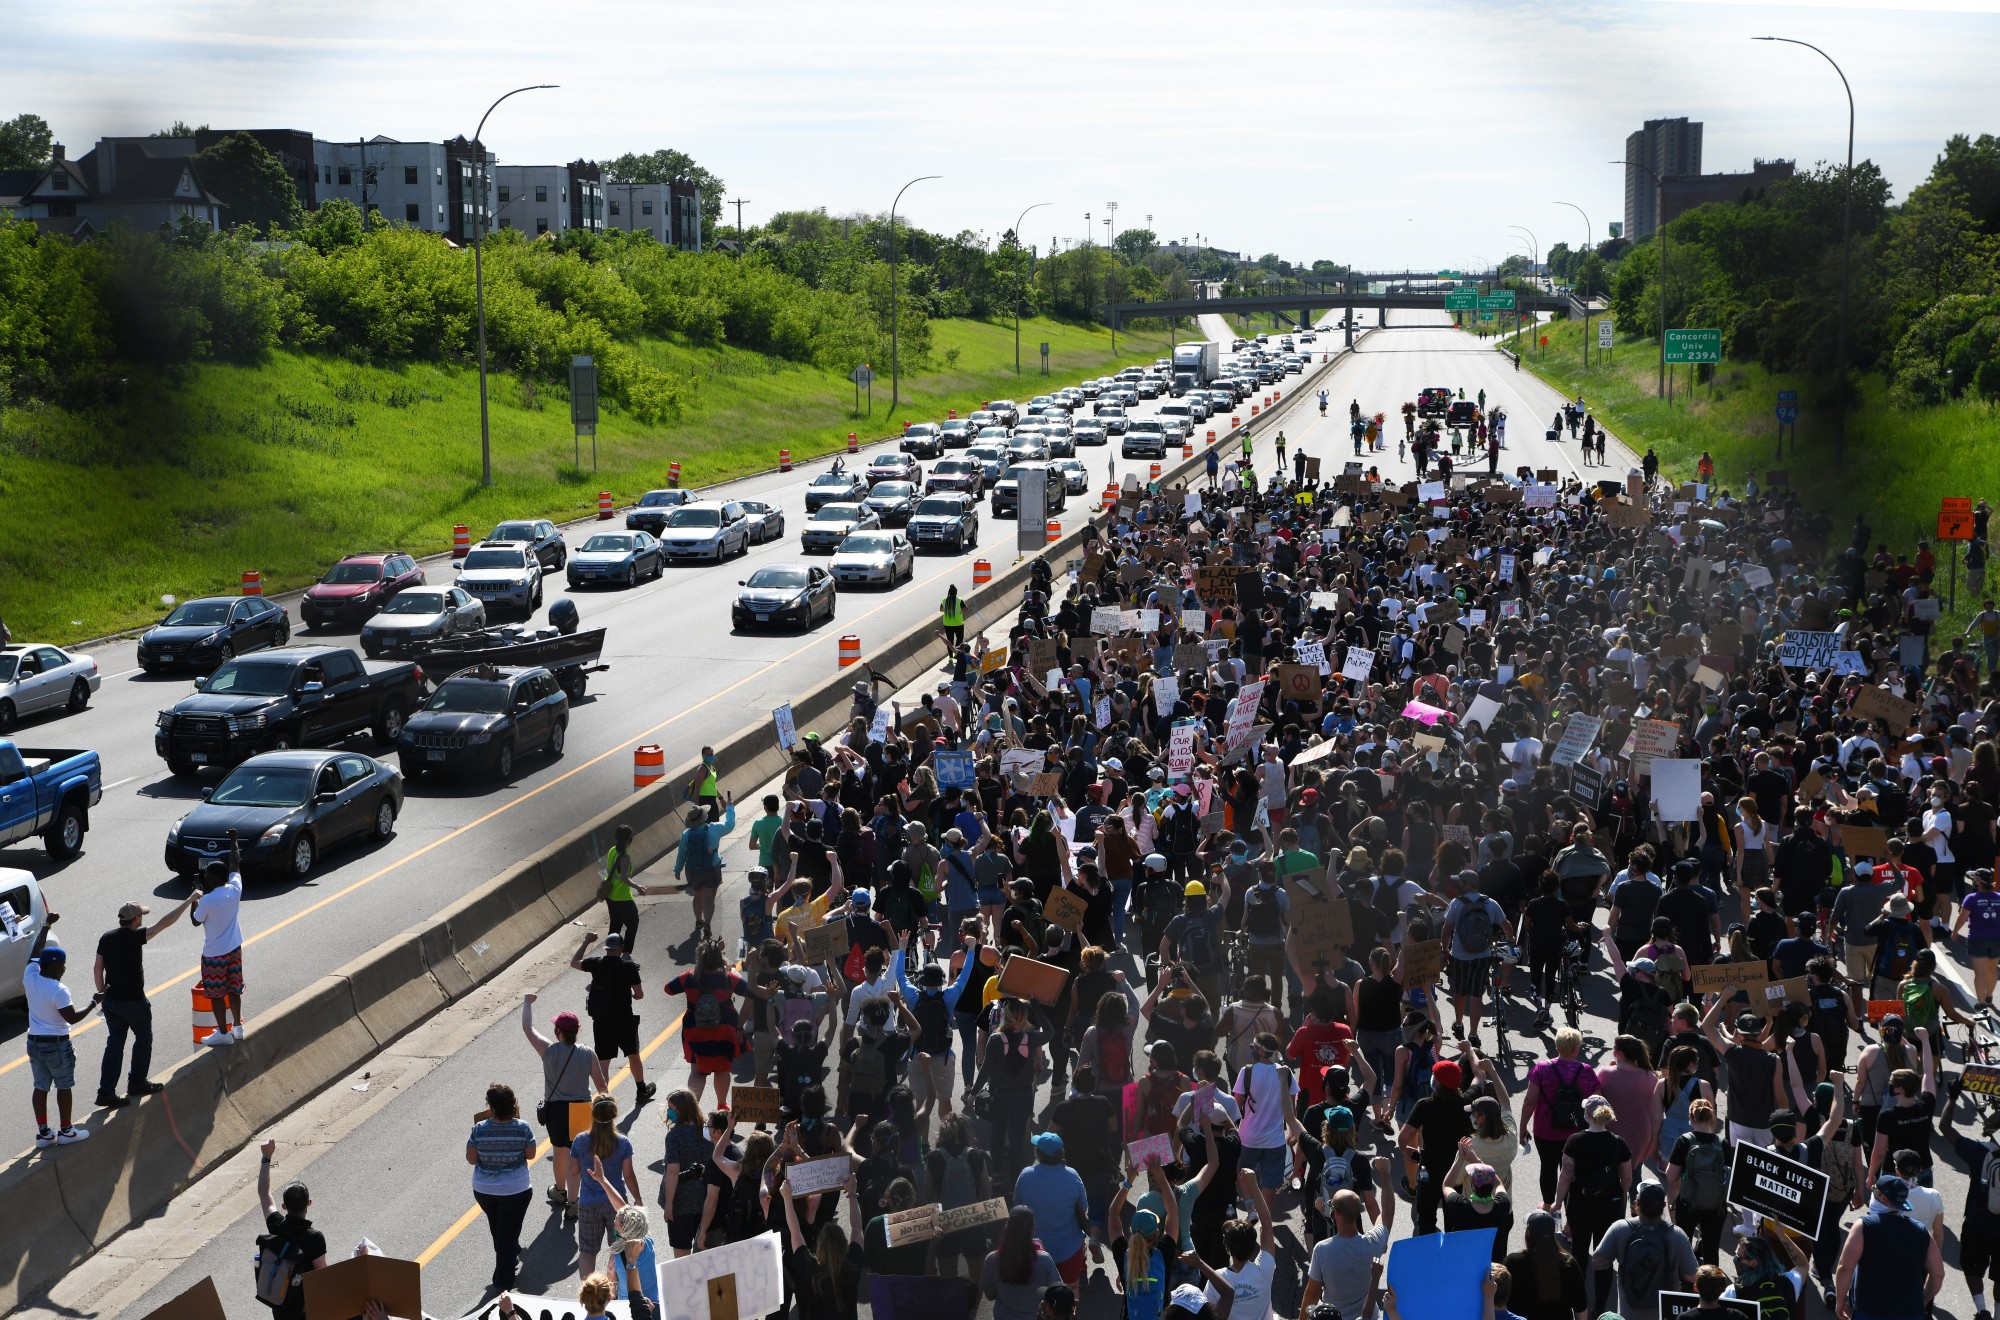 Eastbound traffic on I-94 slows to a halt as drivers raise their fists, honk in support or film demonstrators in the westbound lane on Sunday, May 31 in St. Paul.